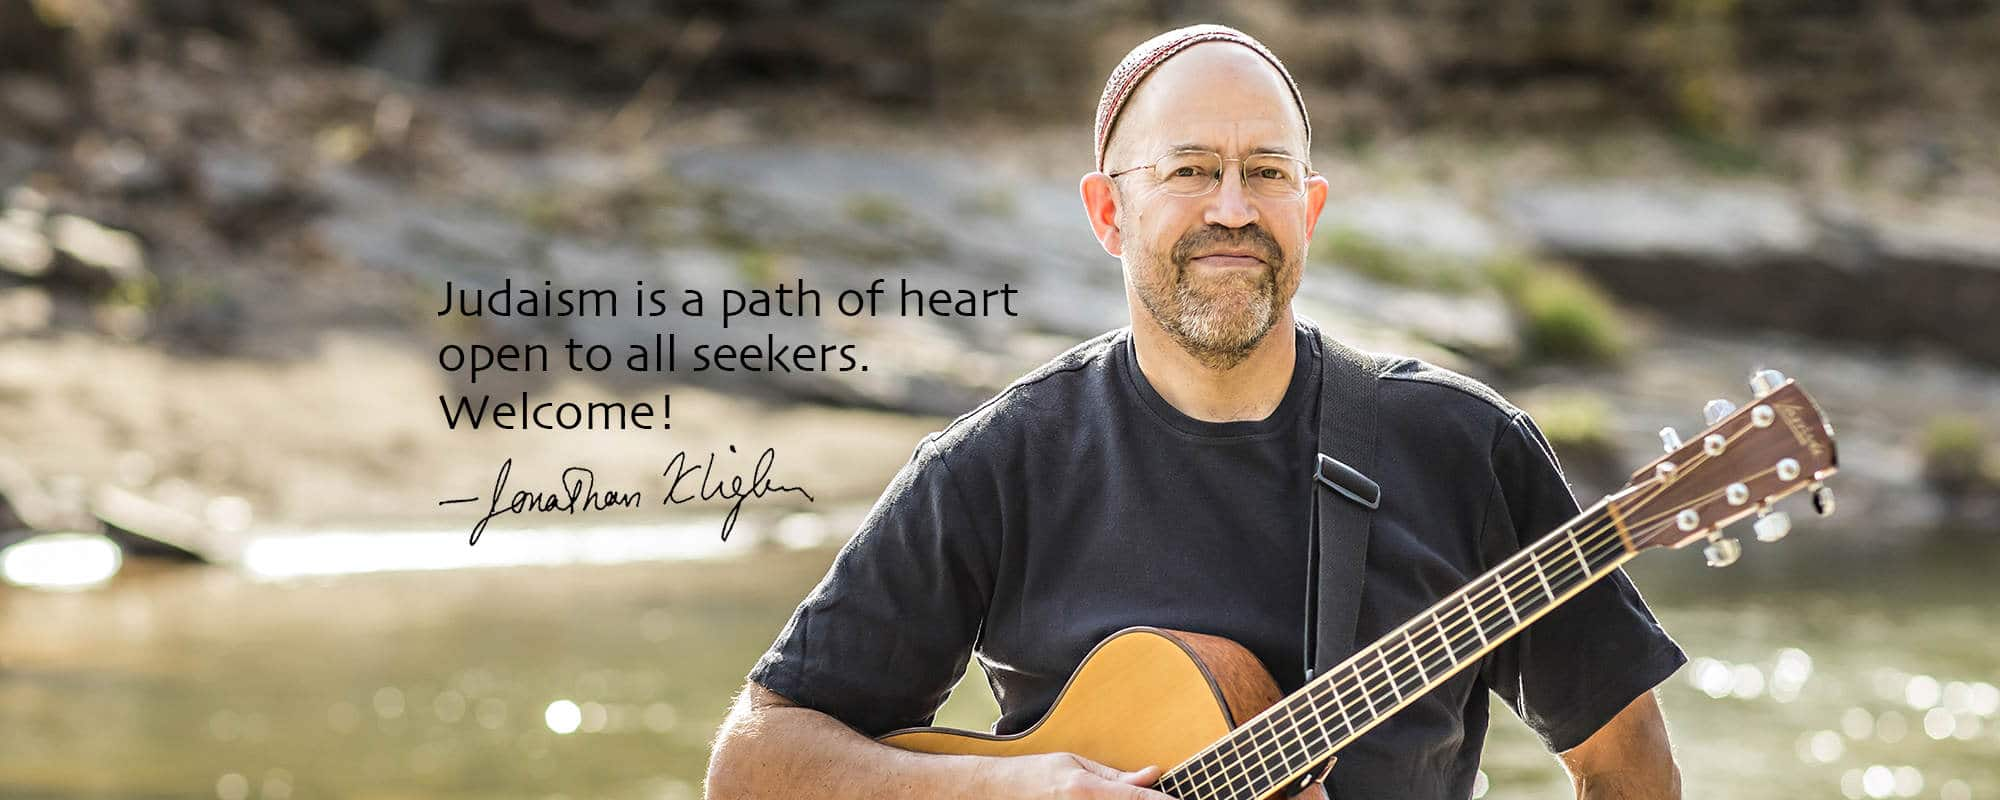 rabbi jonathan kligler - welcome | rabbijonathankligler.com